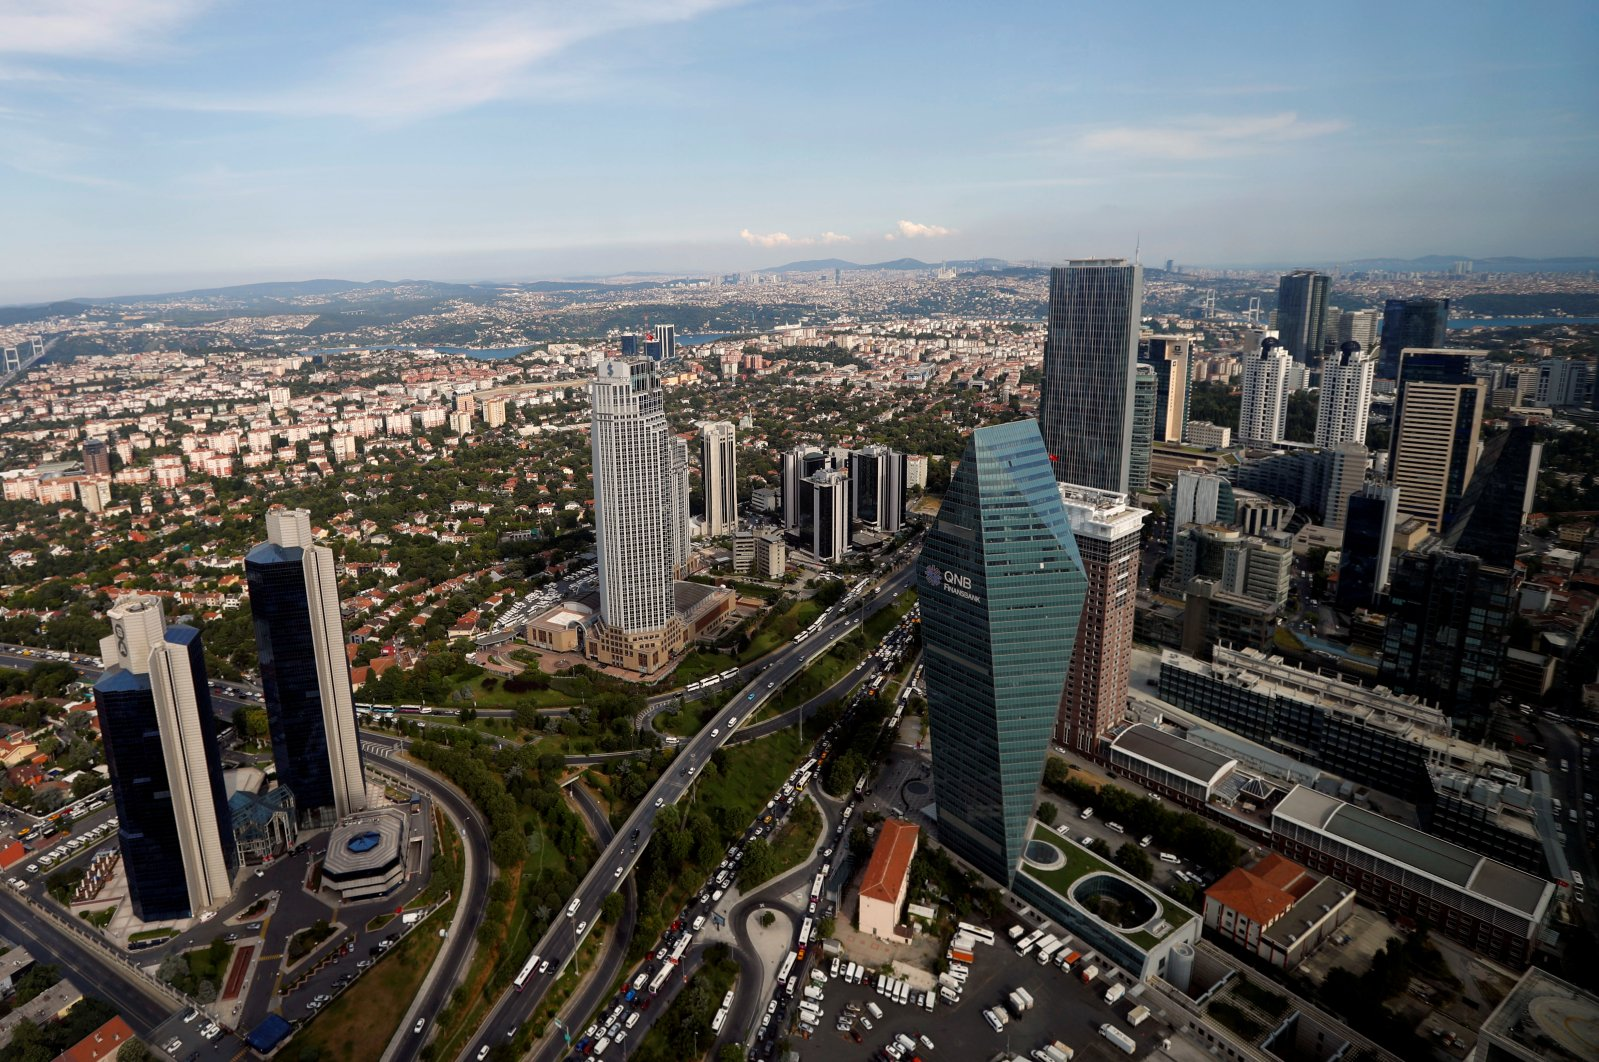 The business and financial district of Levent, which comprises banks' headquarters and popular shopping malls, is pictured in Istanbul, Turkey, July 9, 2019. (Reuters Photo)